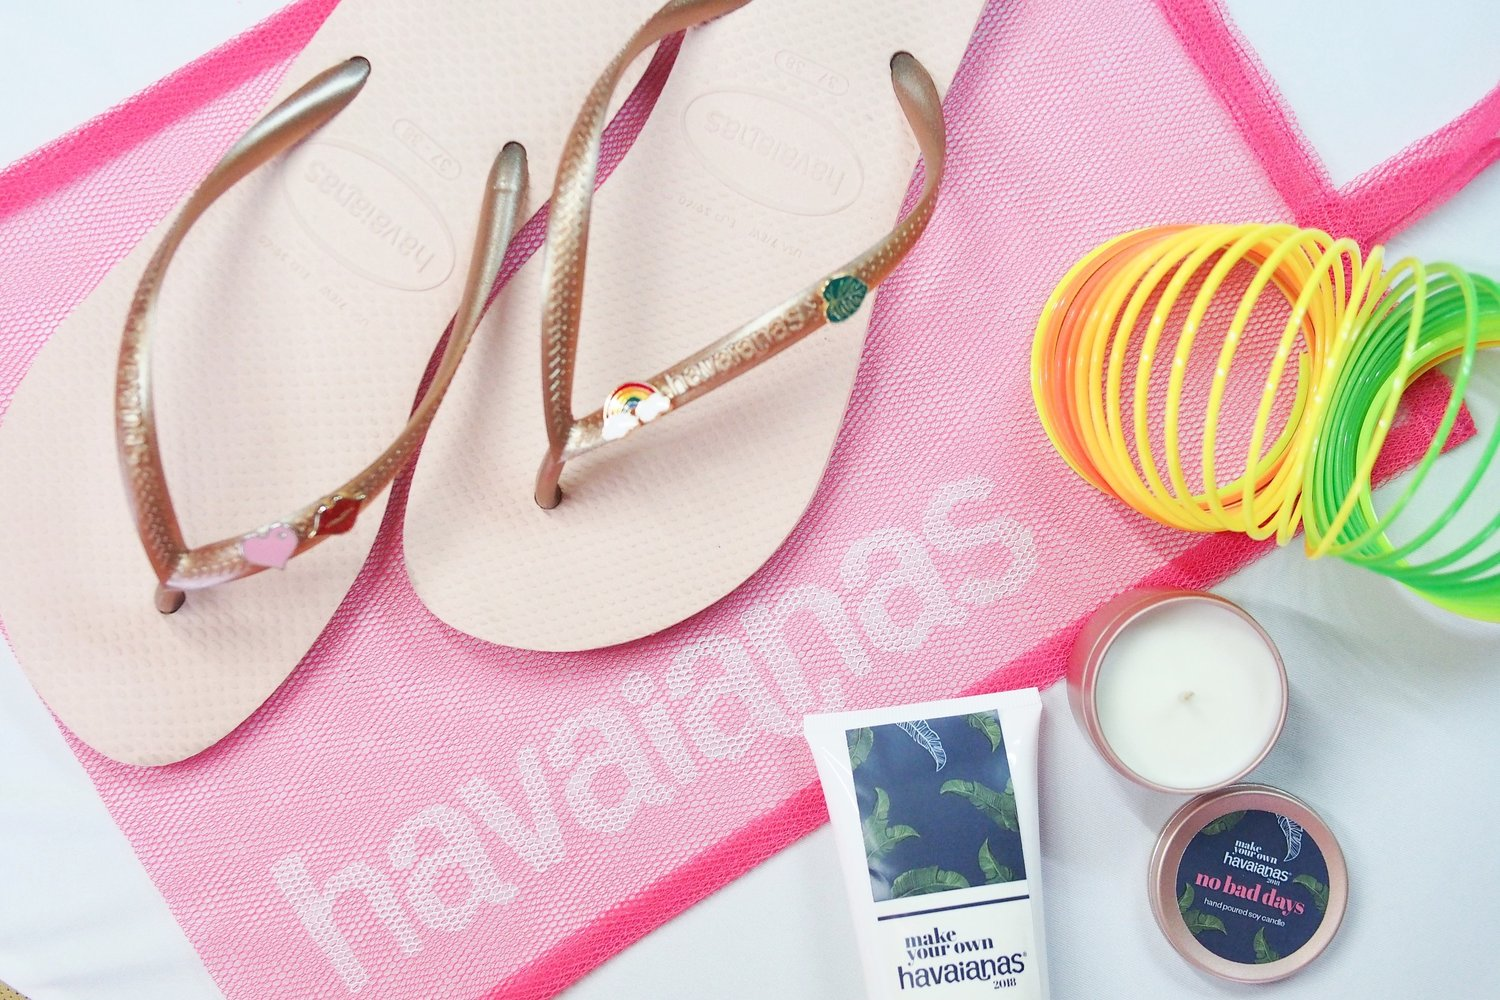 74ebe04bd8ec I got the cutest flipflops at the Make Your Own Havaianas 2018 event ...